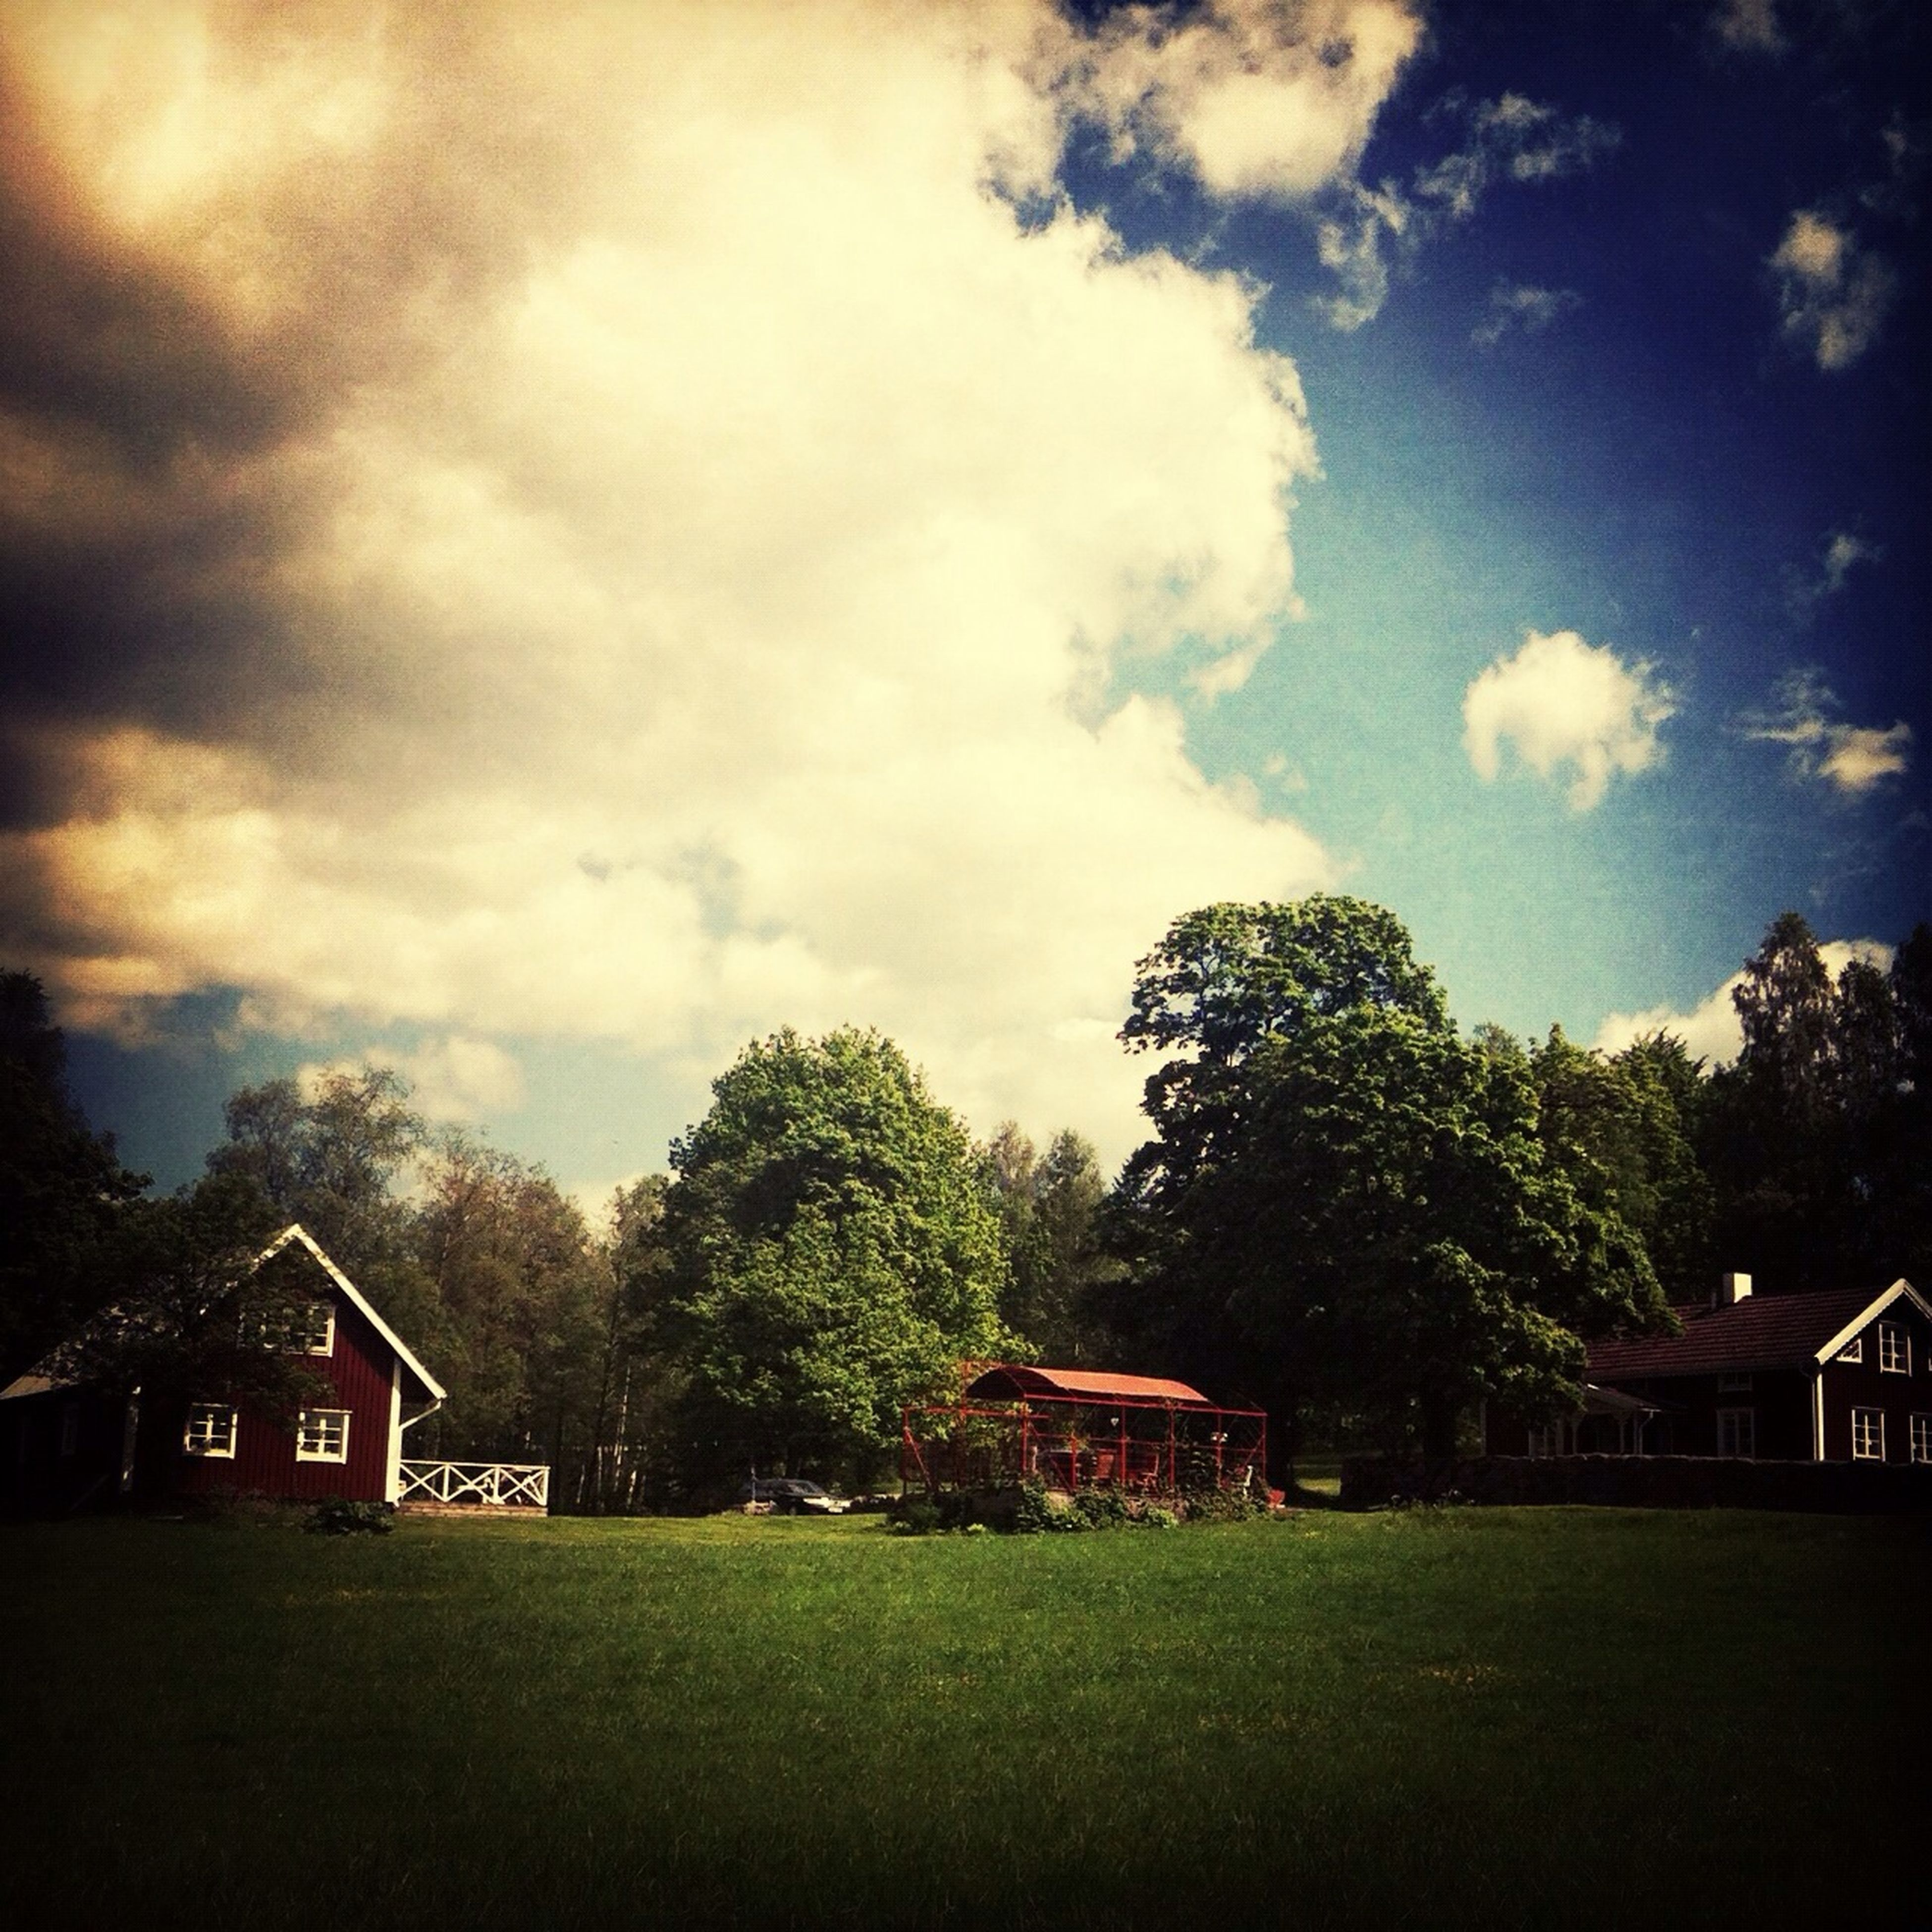 A peaceful place in the middle of no wear! Love this place! EyeEm Best Edits EyeEm Best Shots Love Summer